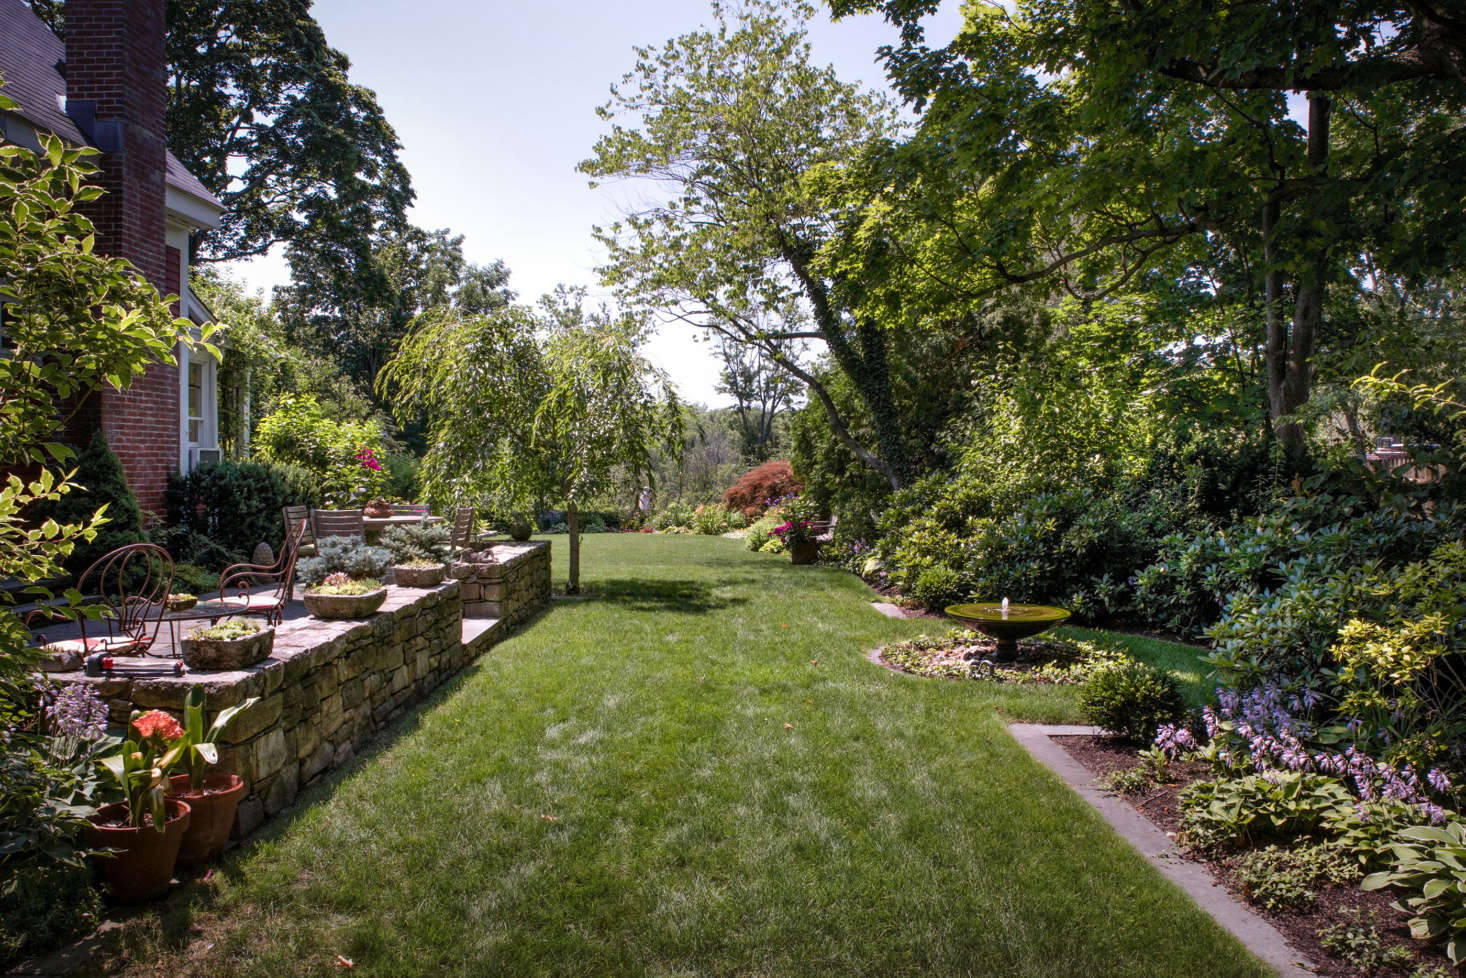 Along the side of the house a stone patio and generous lawn provide a spot for outdoor recreation and entertaining.